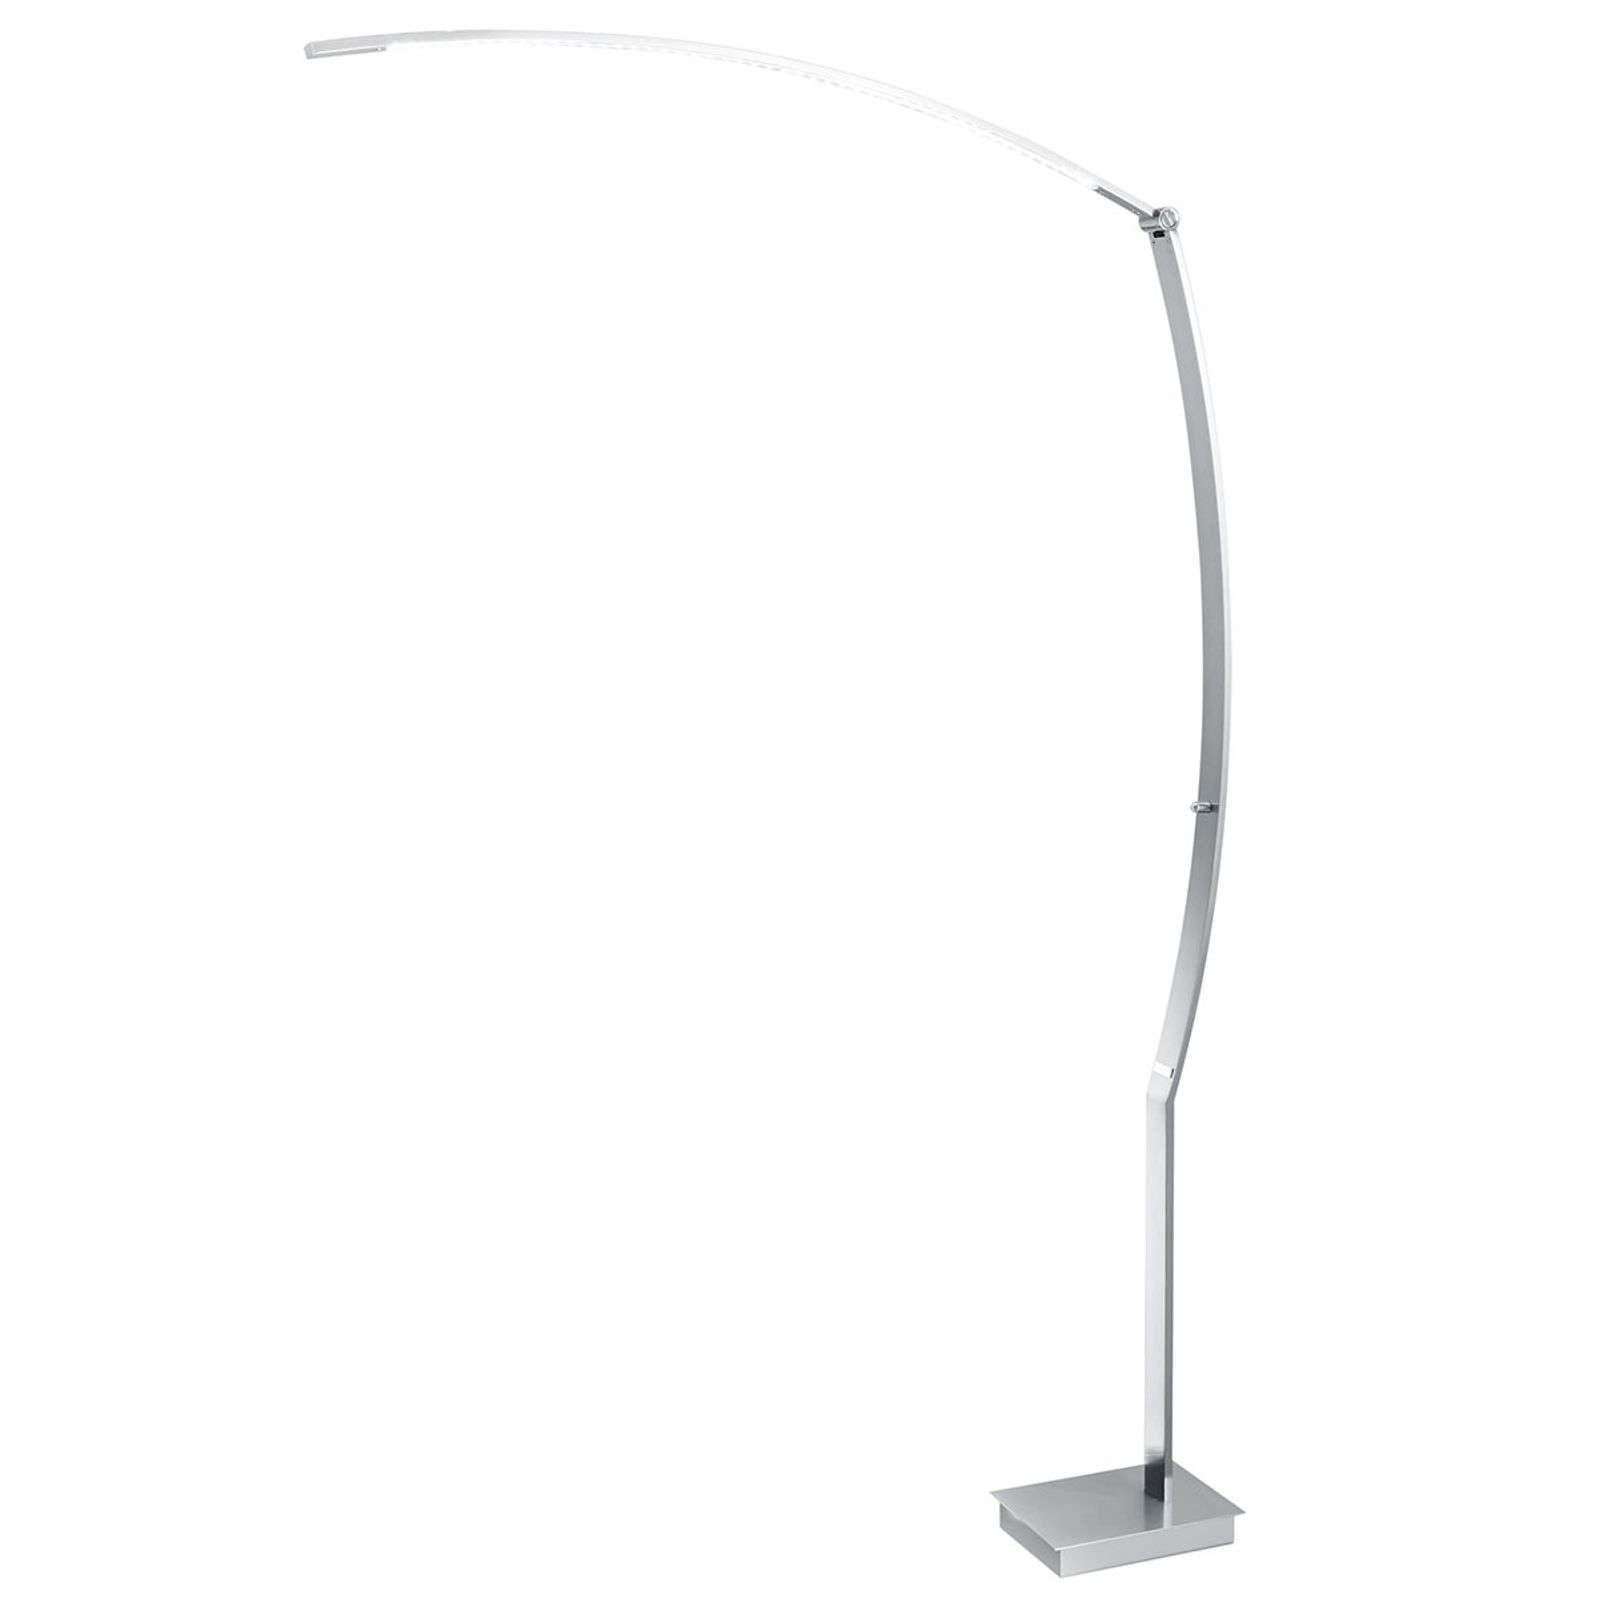 Lampadaire LED Tree pliable, 137 cm